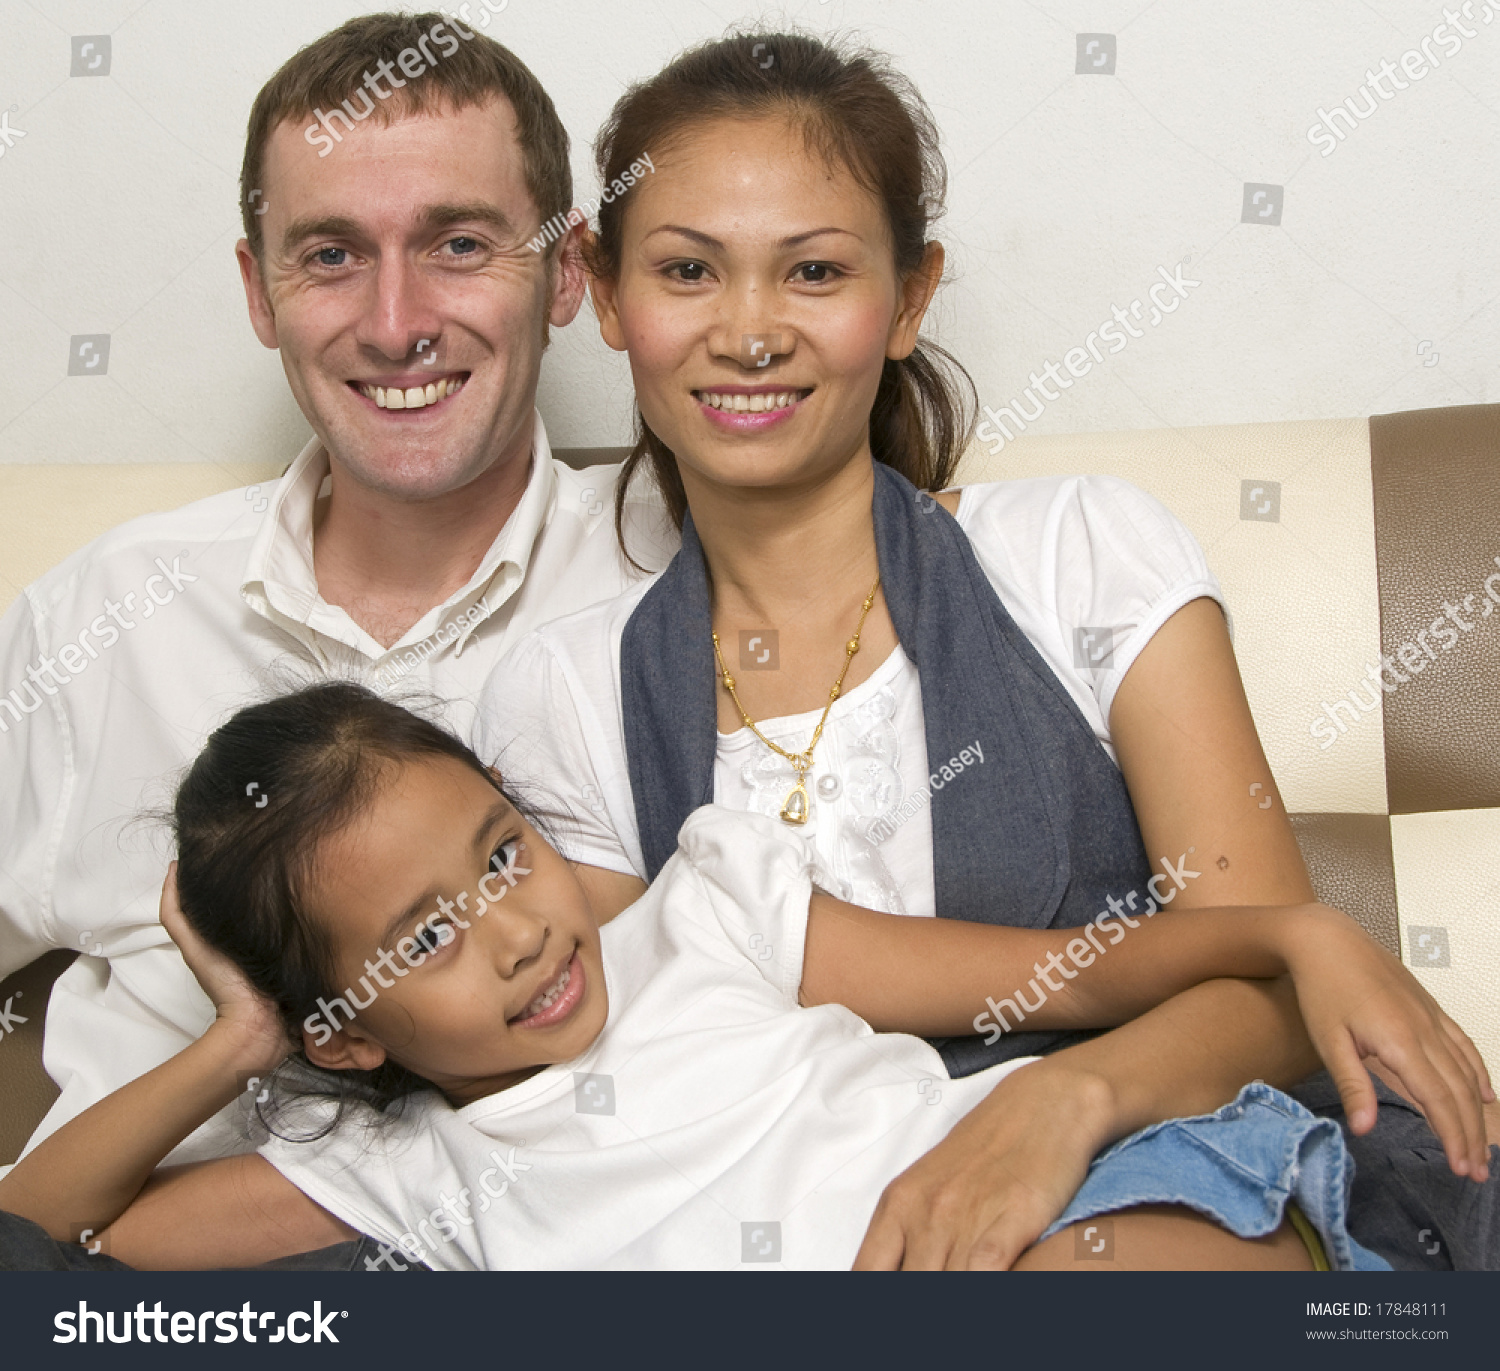 Interacial Best young interacial family child stock photo 17848111 - shutterstock